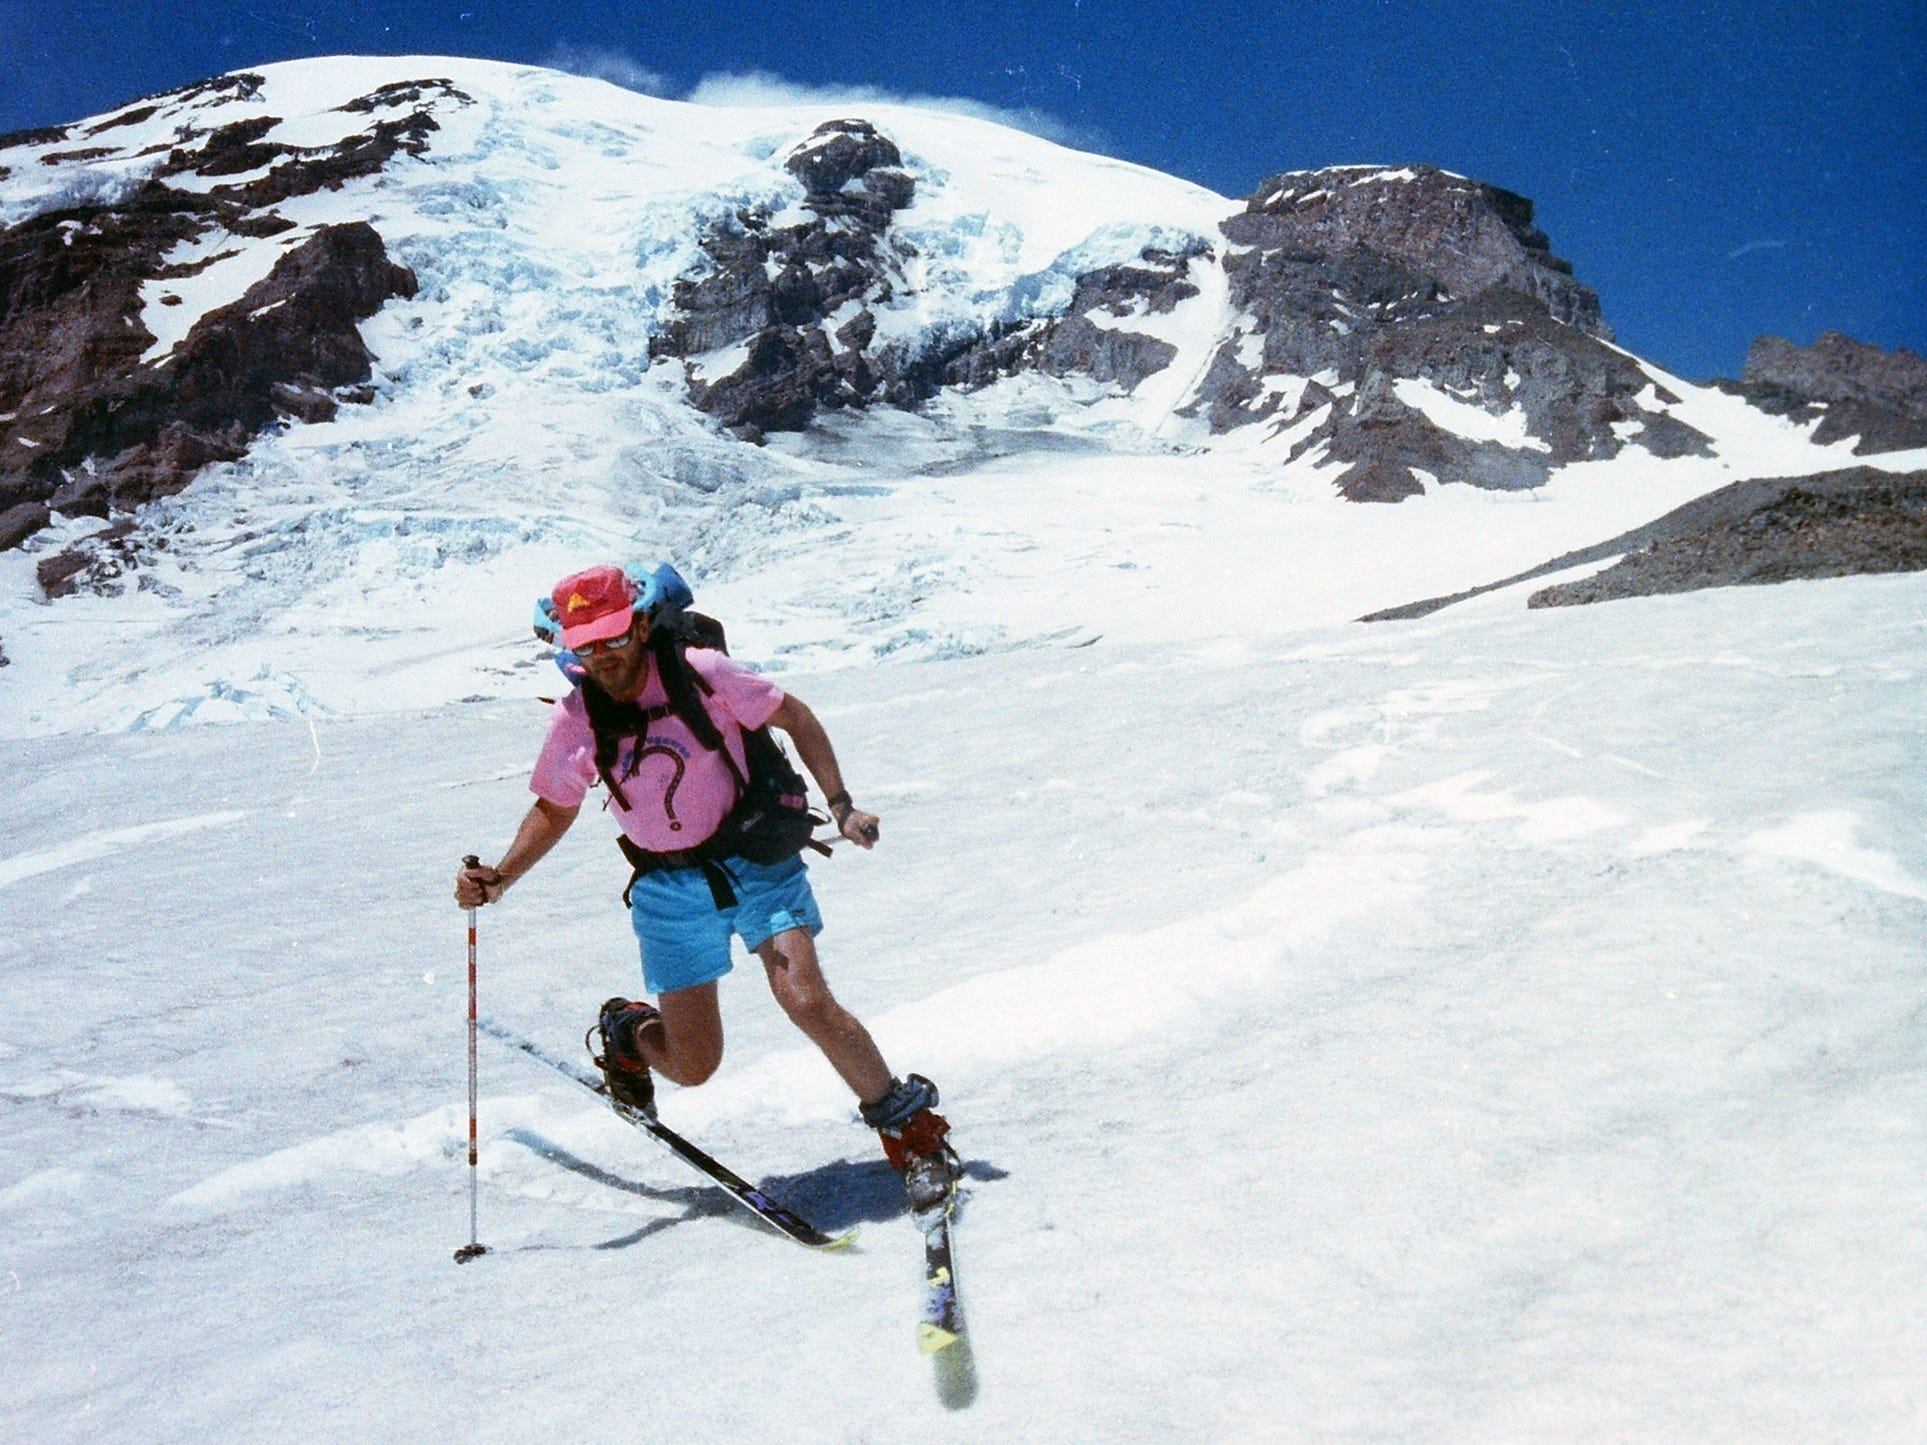 07/29/91